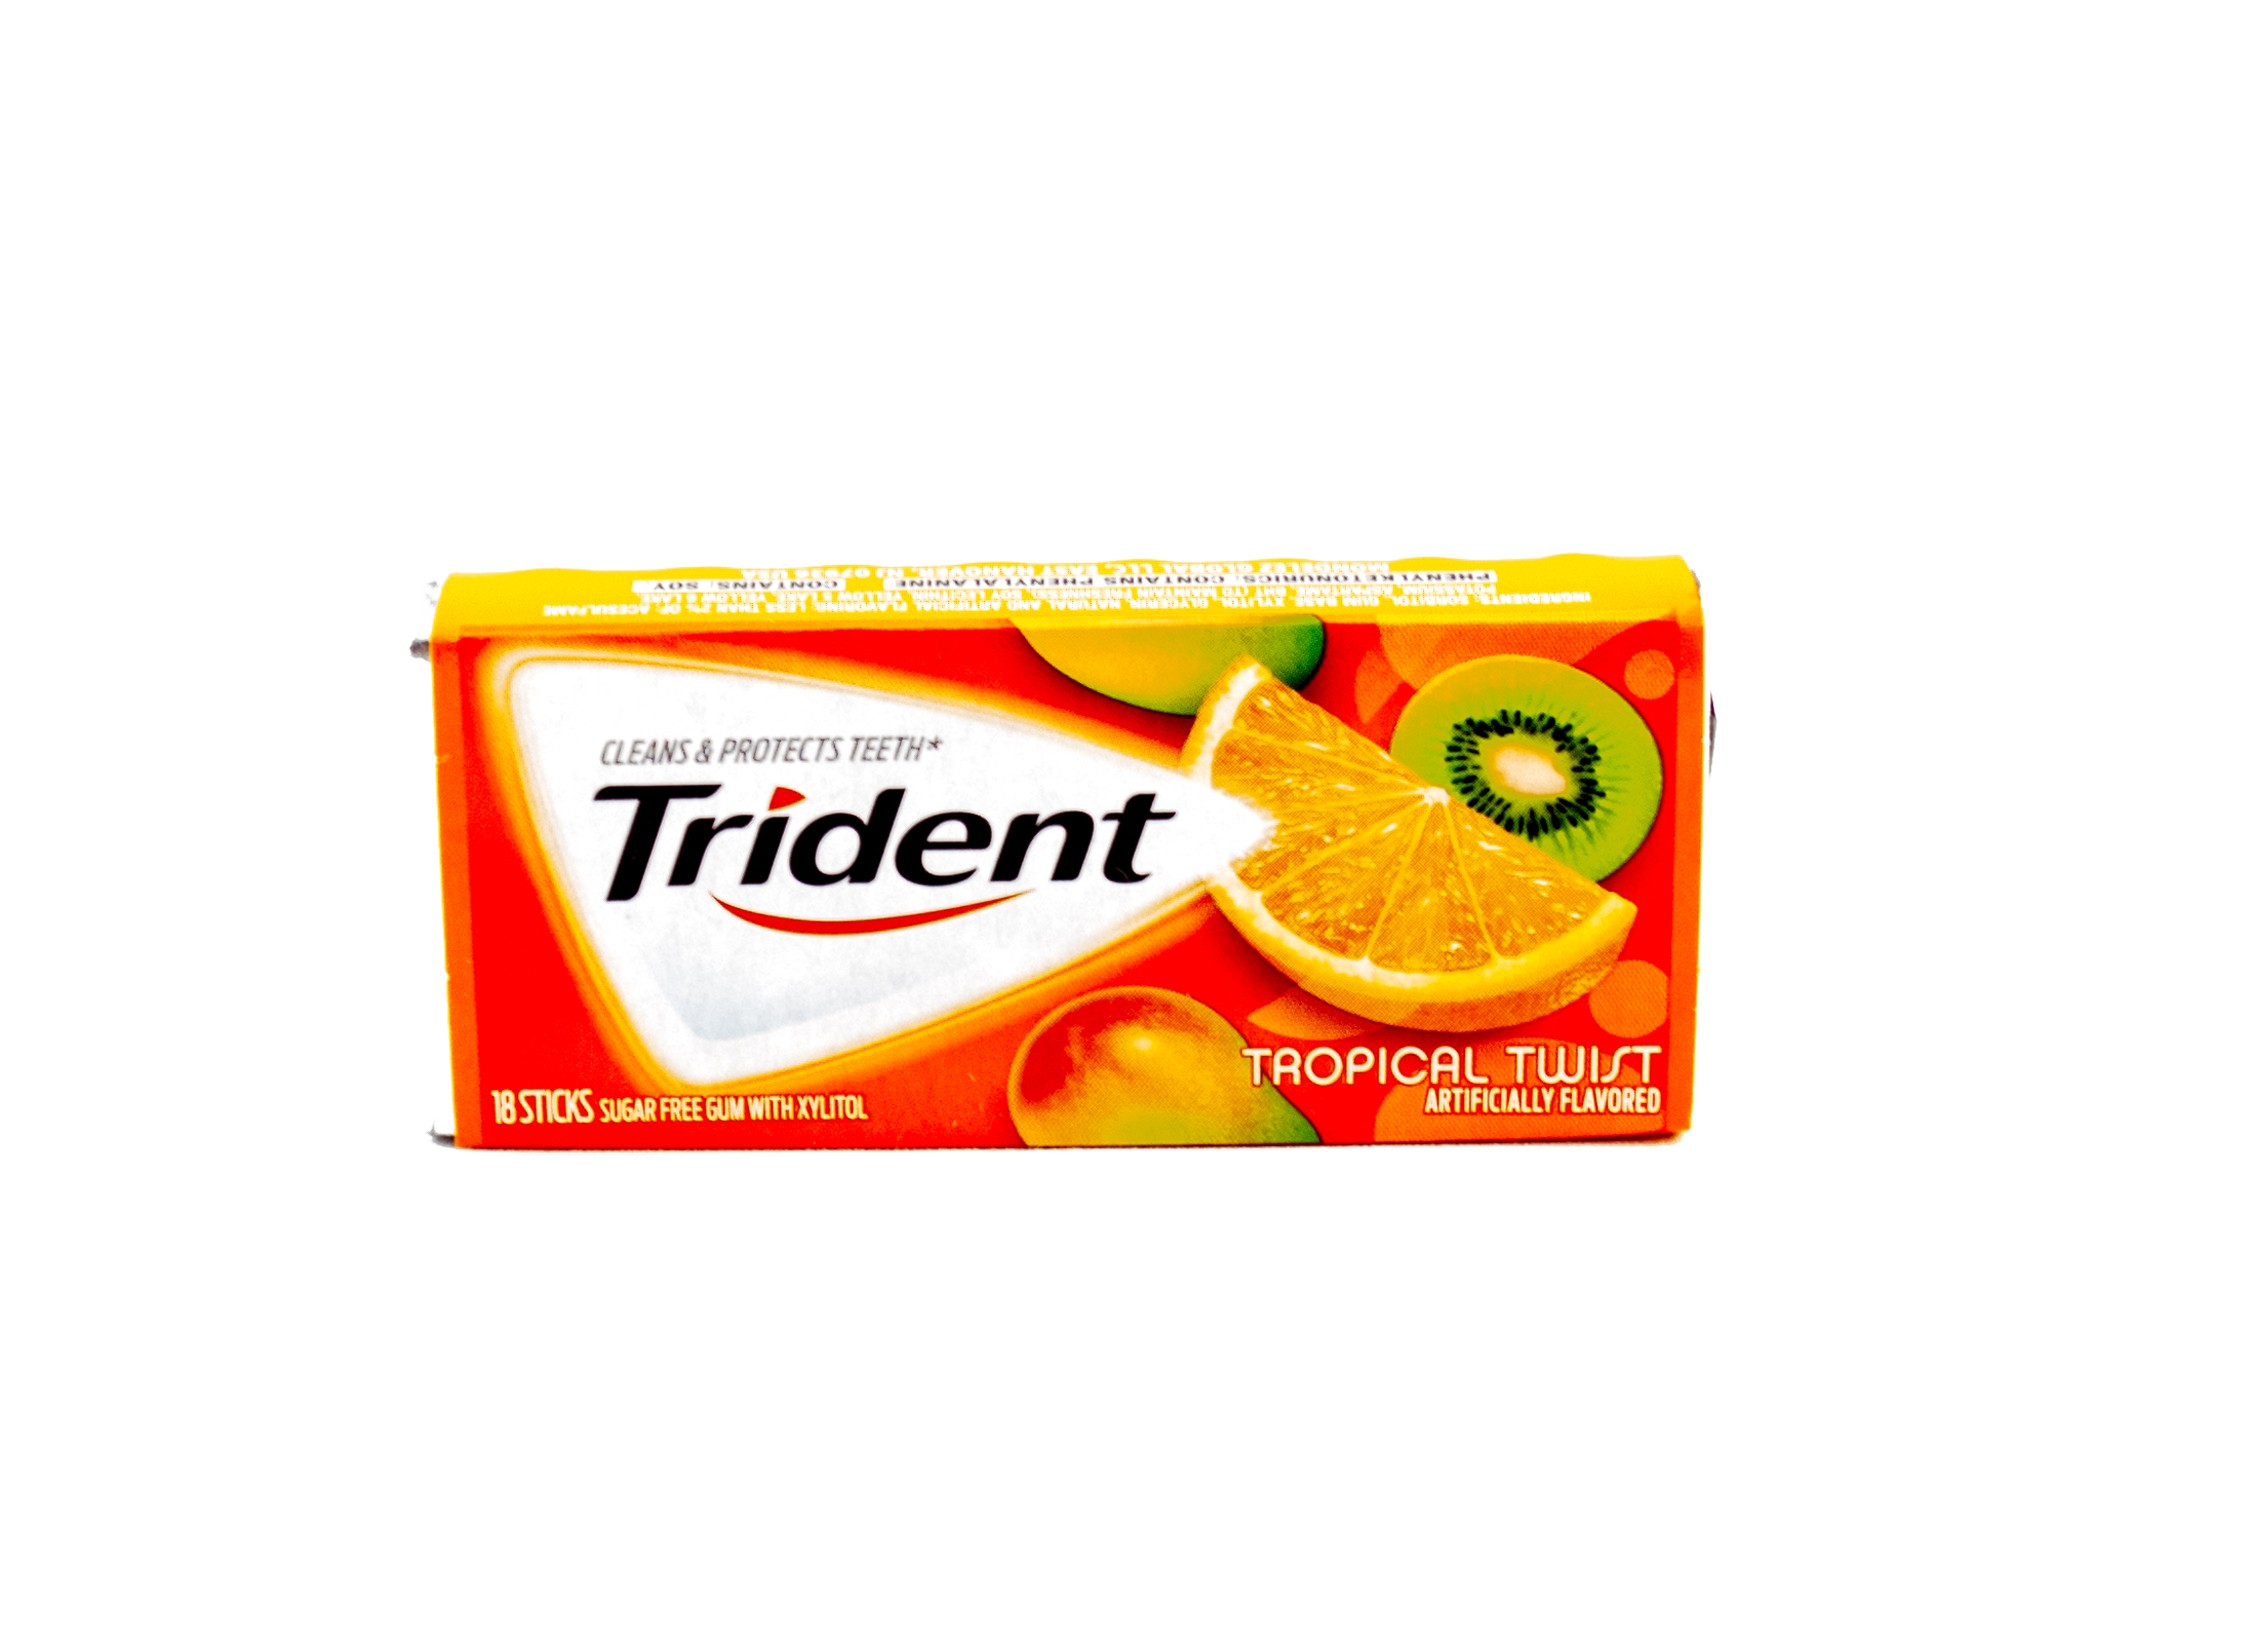 Trident Gum Tropical Twist (30.6g)